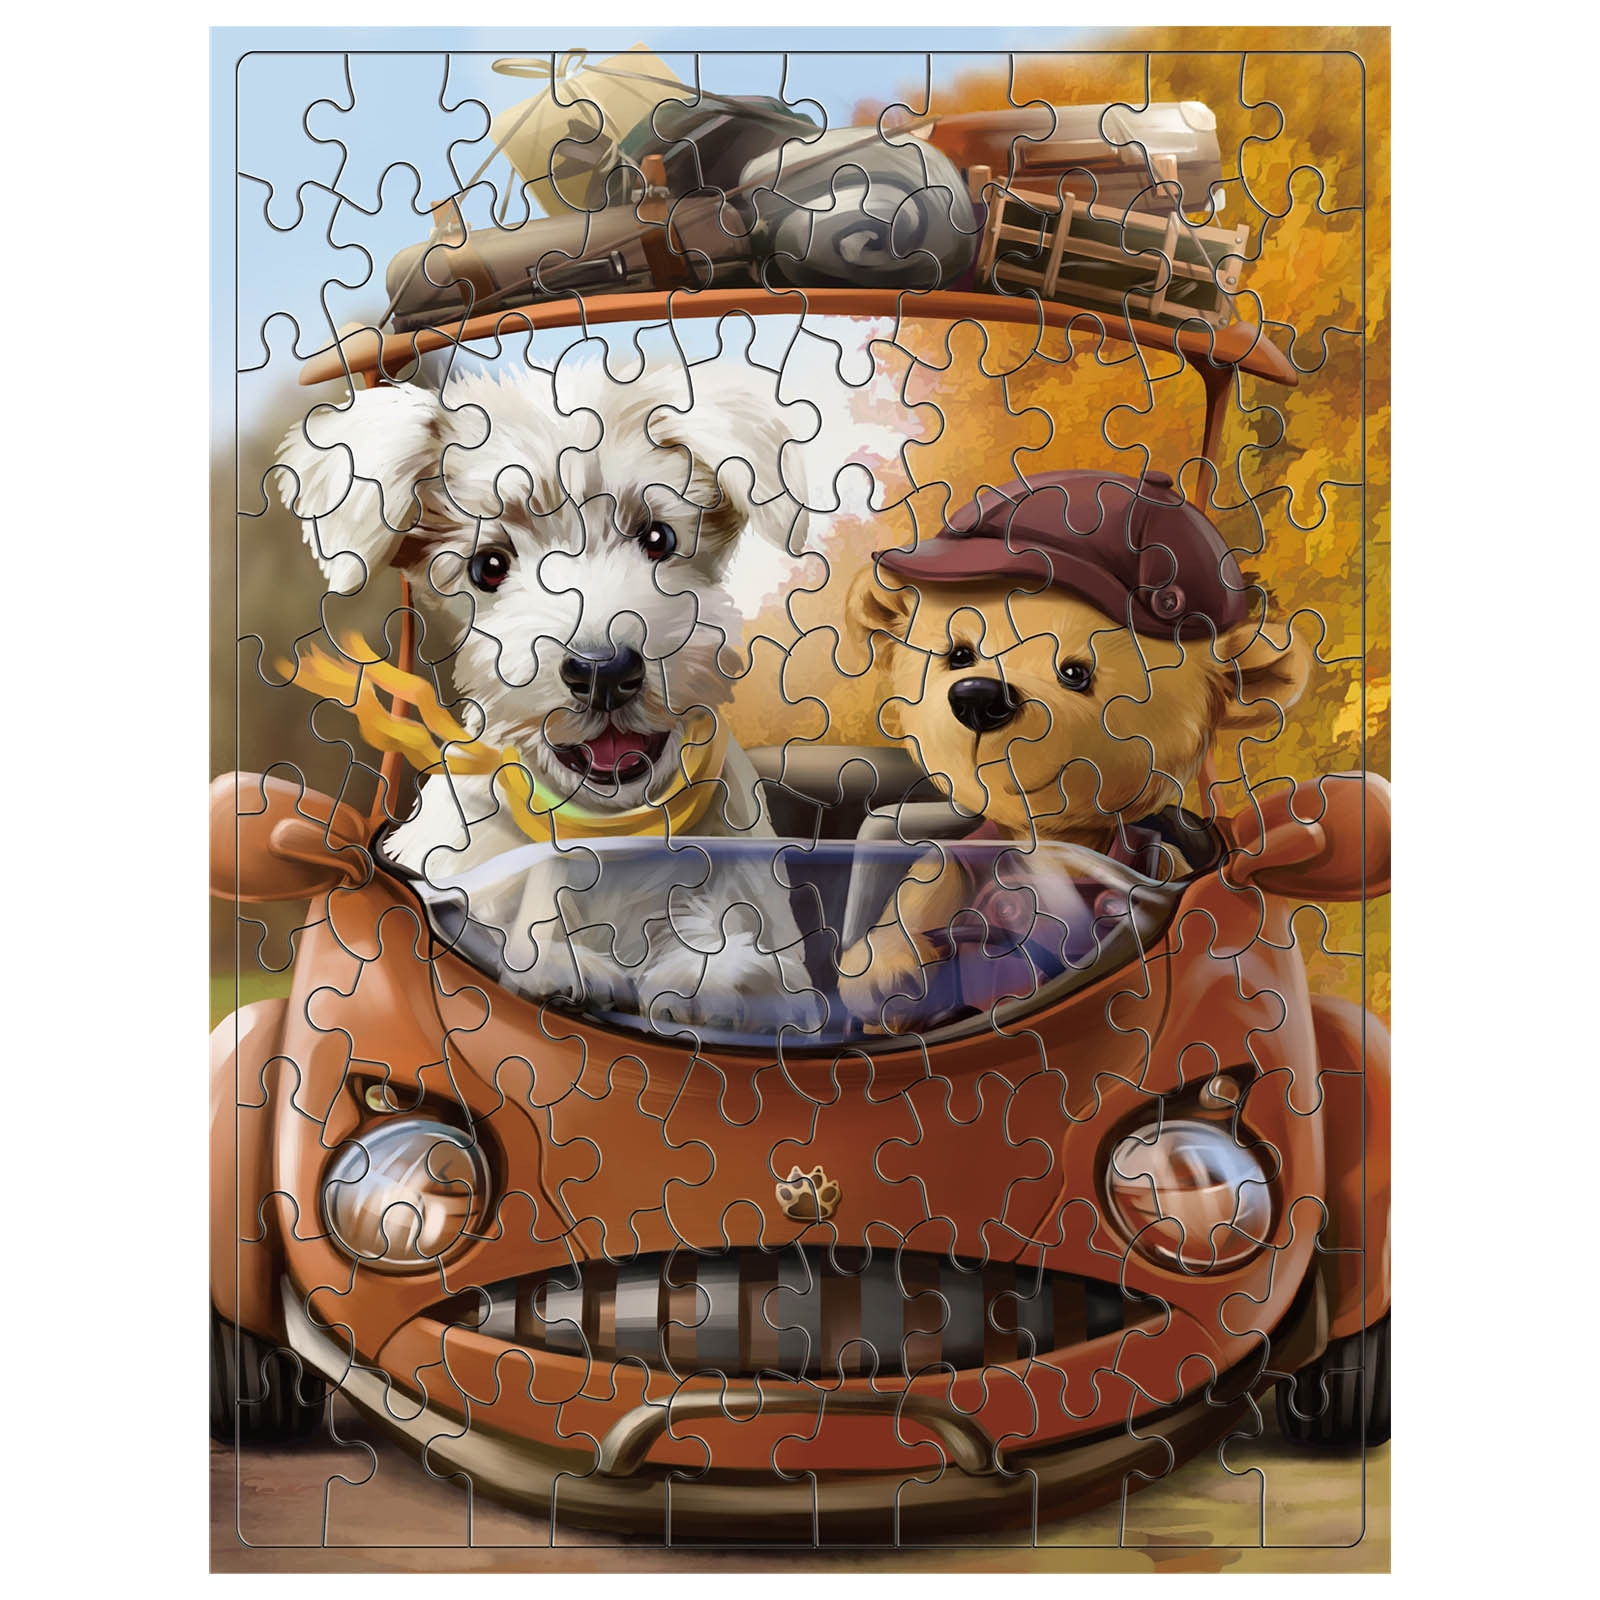 HIINST 100 Pieces Children Educational Jigsaw Puzzle Cartoon Animal Landscape Oil Painting Puzzle Toy Adult Game детские игрушки